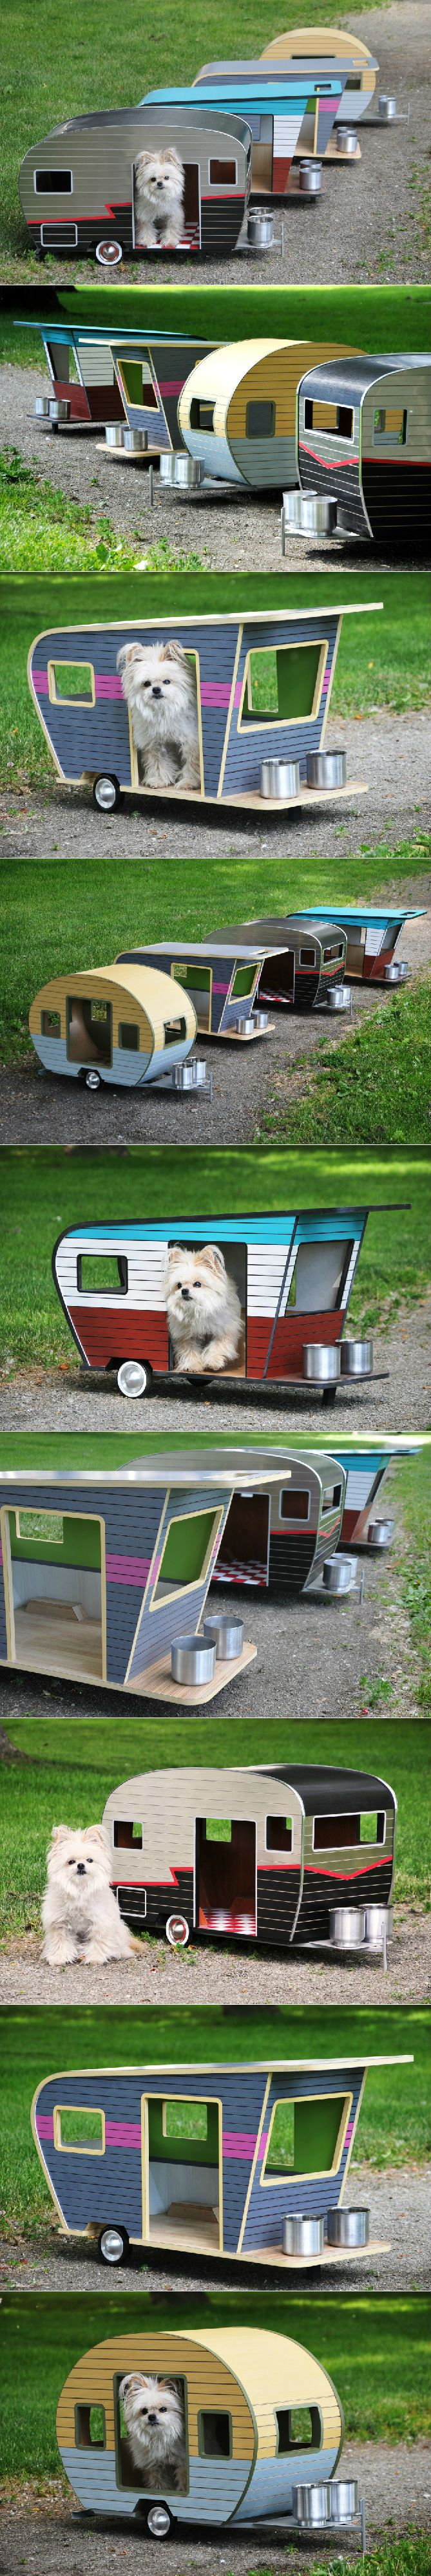 Cool Dog House Upgrade: Instantly-Endearing Pet Trailer Designs. Unique dog-sized trailers made from envir